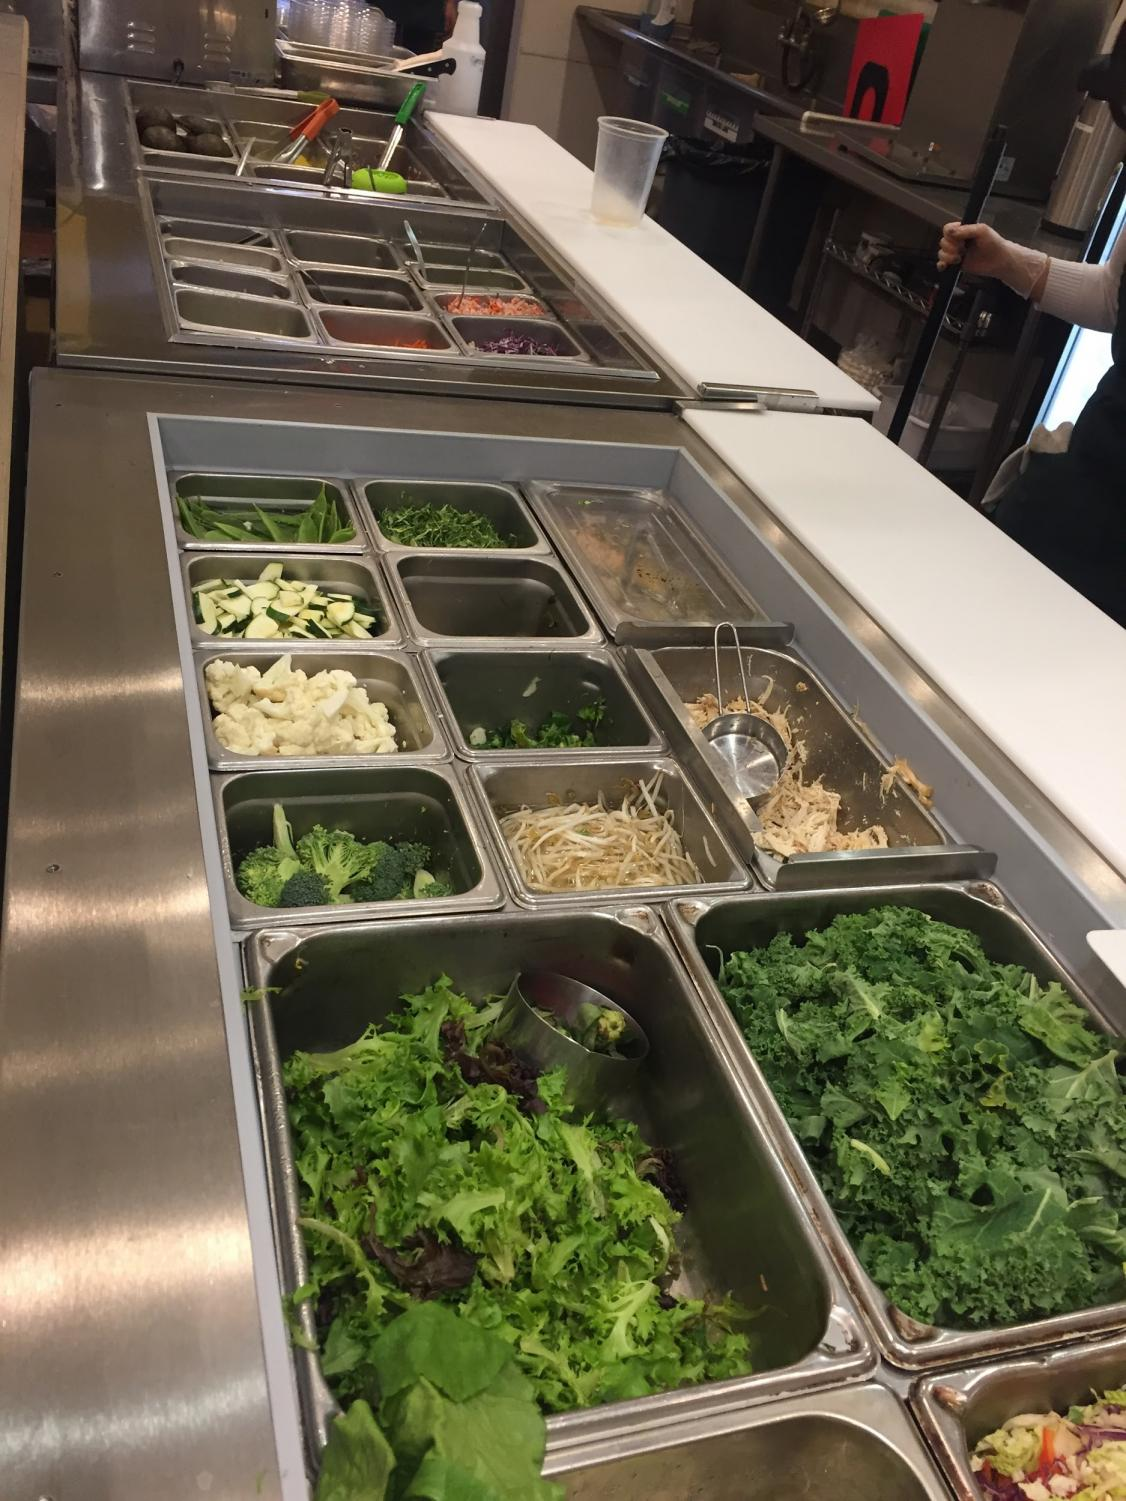 Daboros serves their healthy food through an open, customizable system filled with many greens and vegetables.